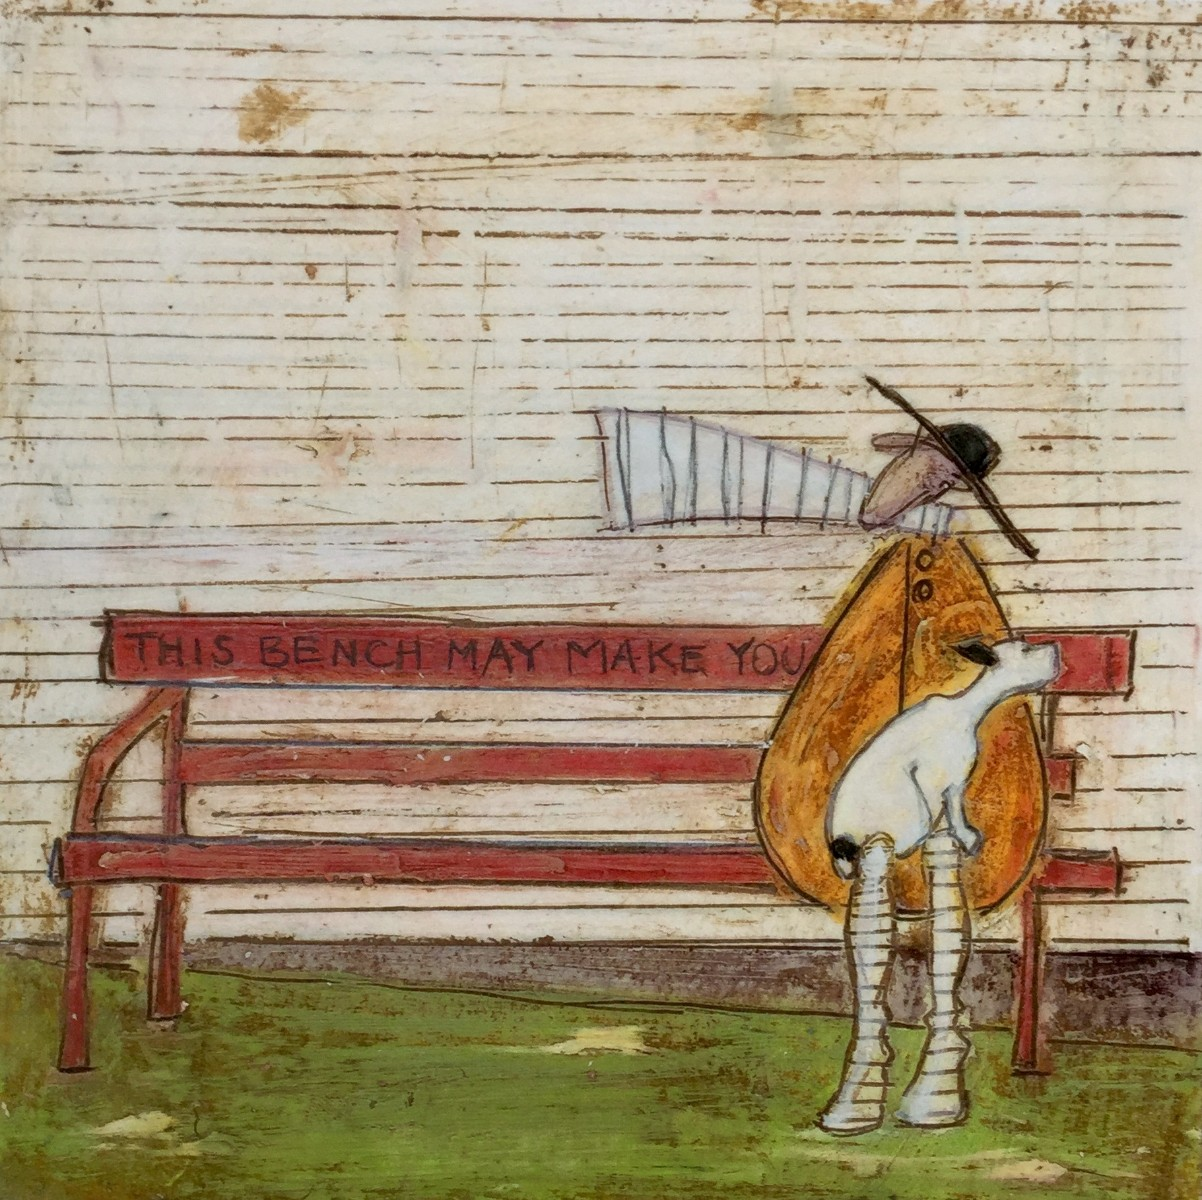 This Bench May Make You Happy! by Sam Toft